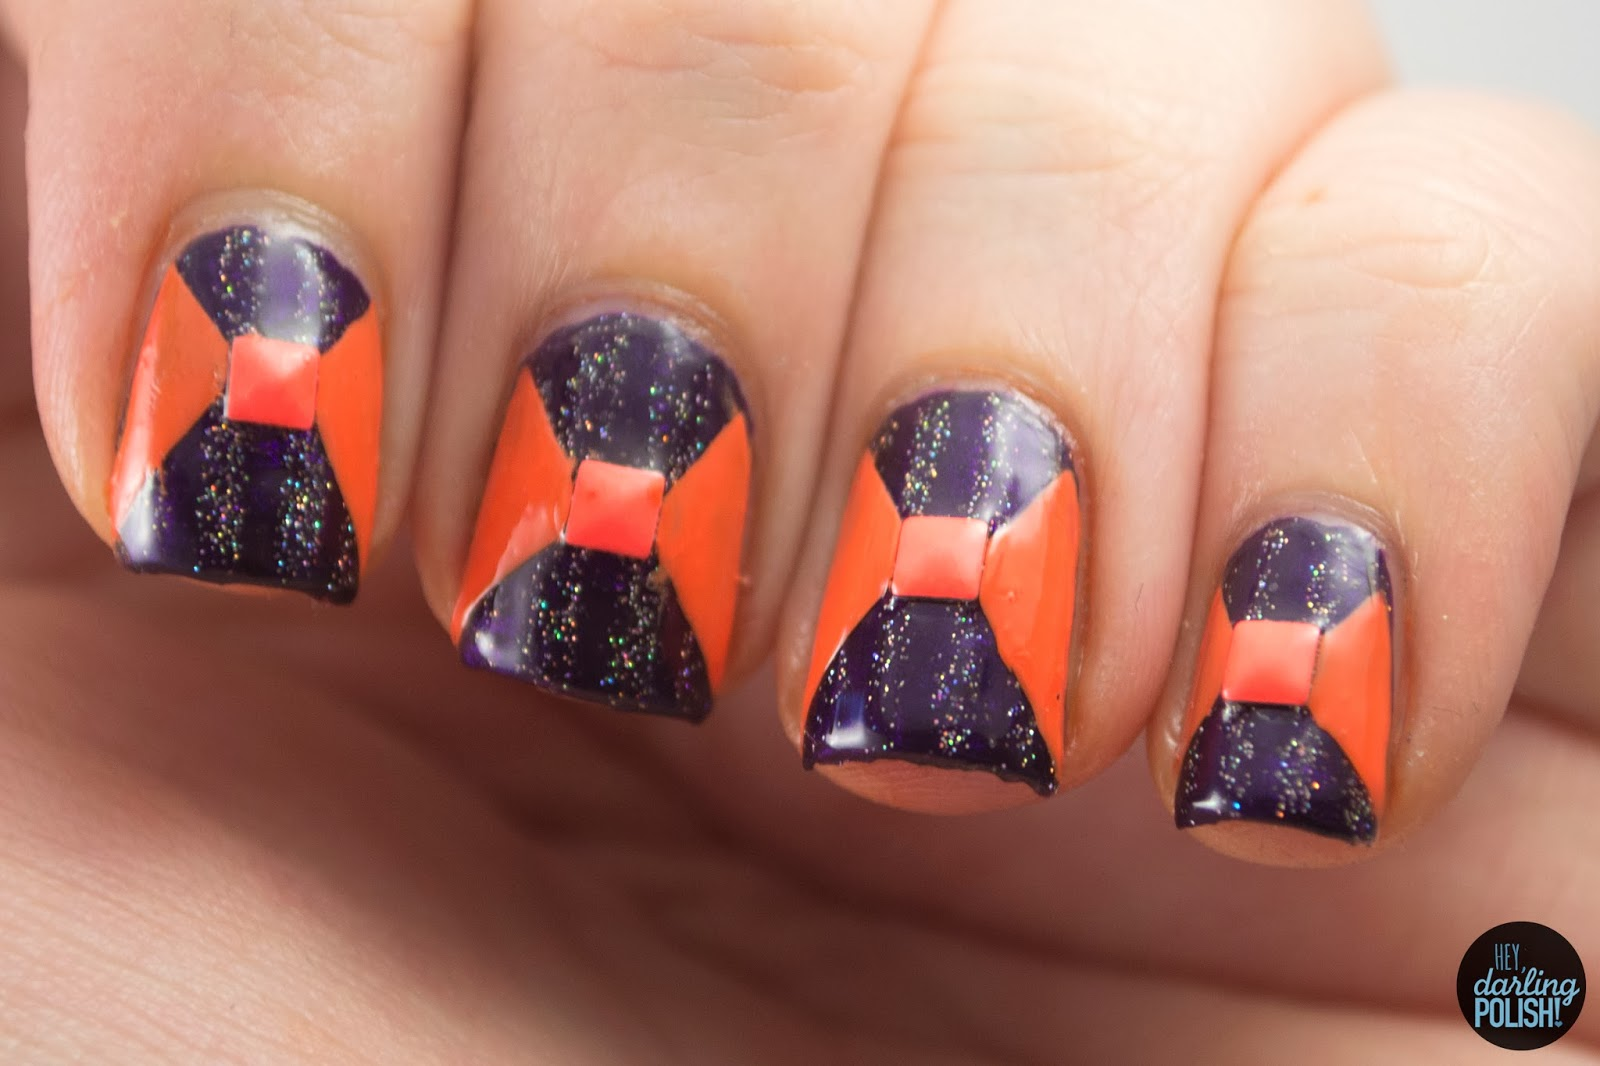 nails, nail art, nail polish, polish, orange, purple, fairy dust, nail art a go go, hey darling polish, studs, stripes,